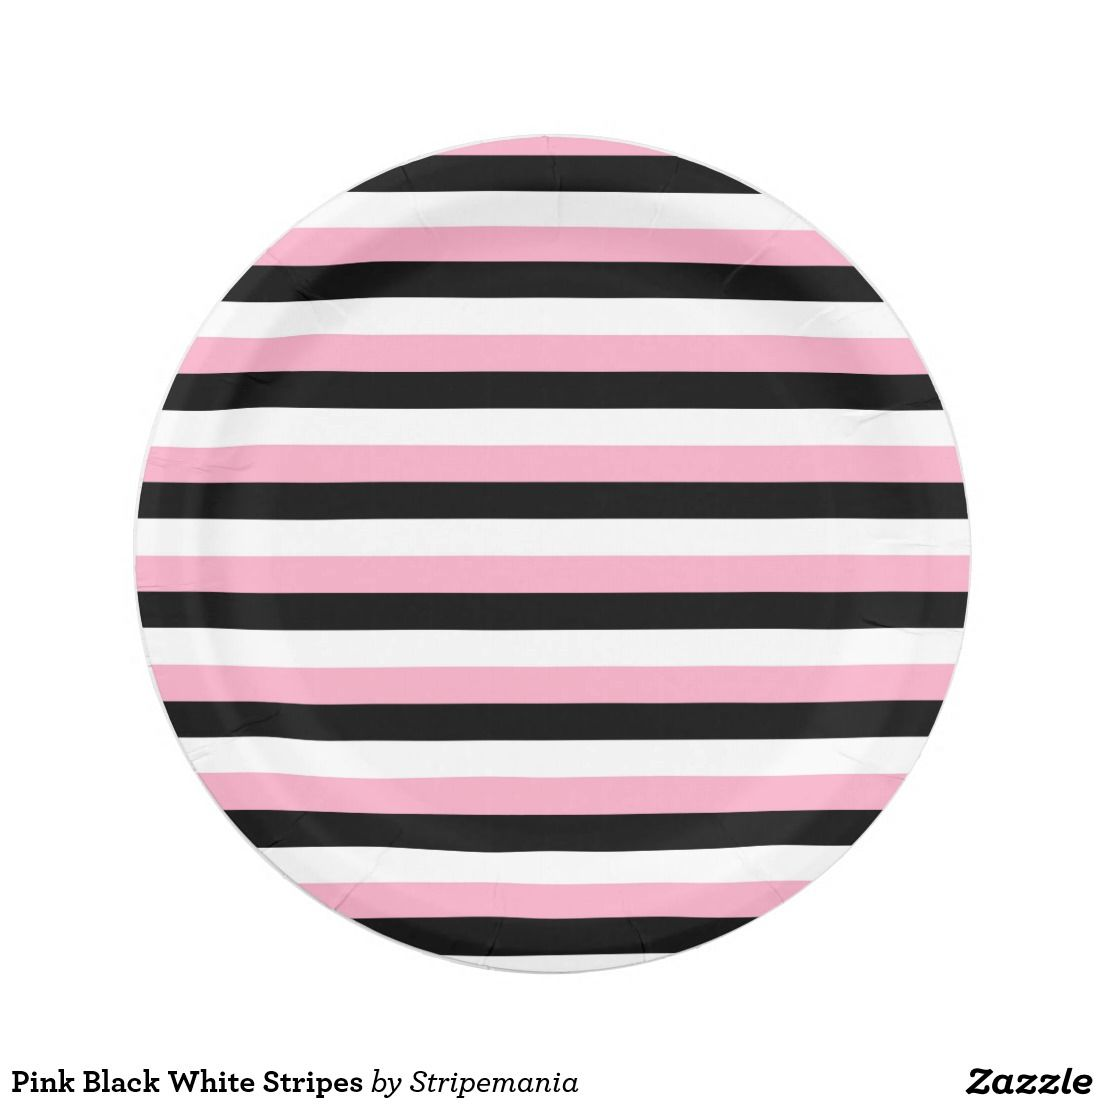 Pink Black White Stripes Paper Plate  sc 1 st  Pinterest & Pink Black White Stripes Paper Plate | Black white stripes Pink ...